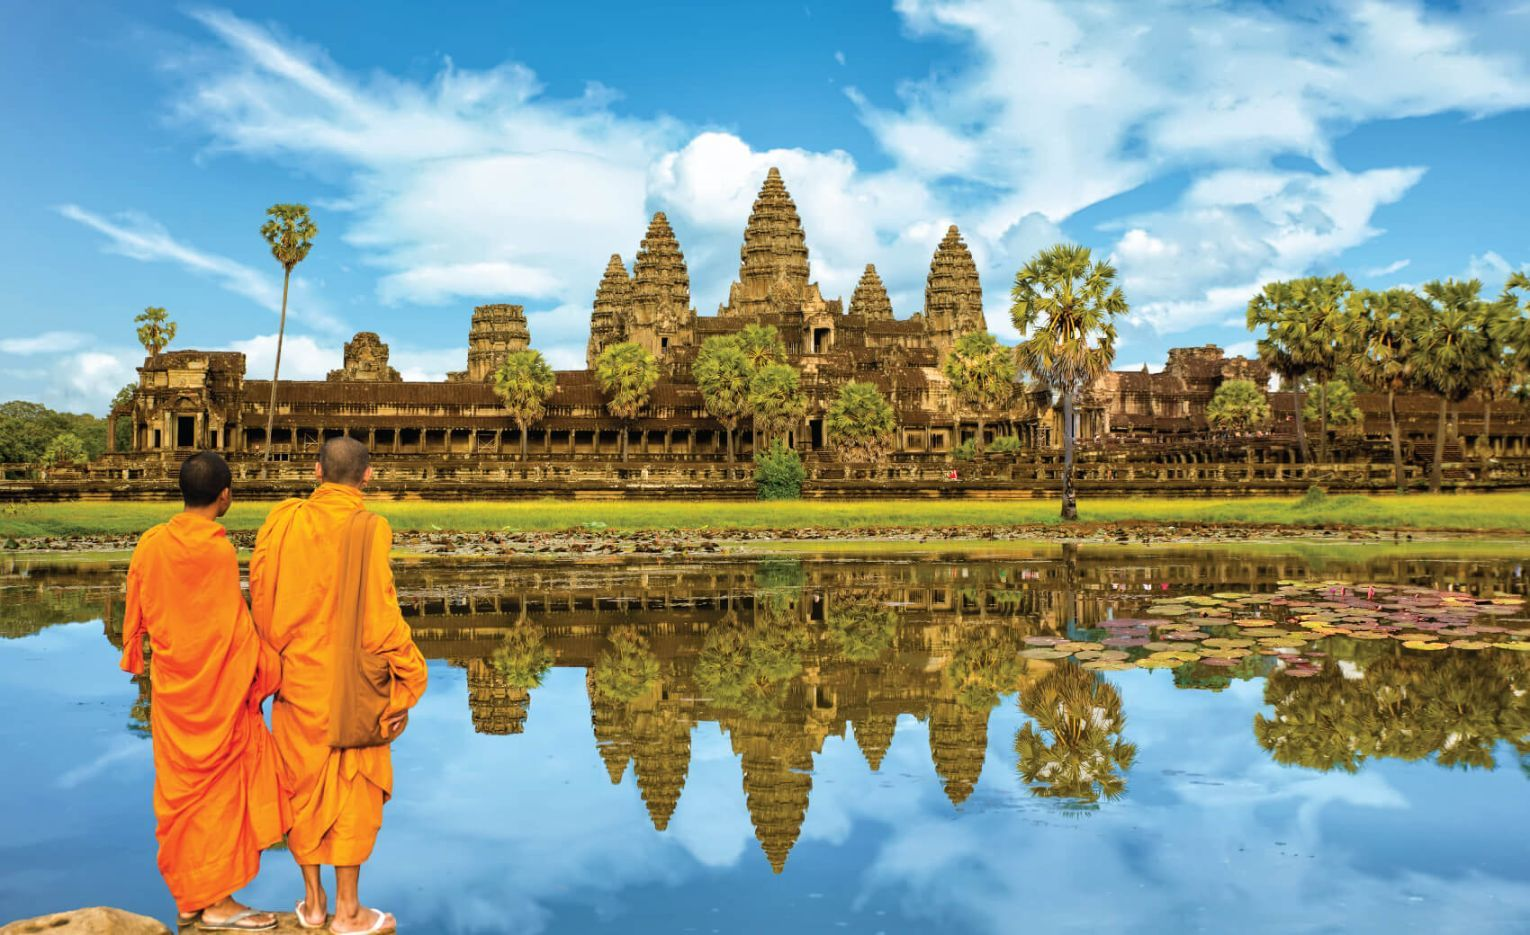 Angkor Wat is a temple complex in Cambodia and the largest religious monument in the world.